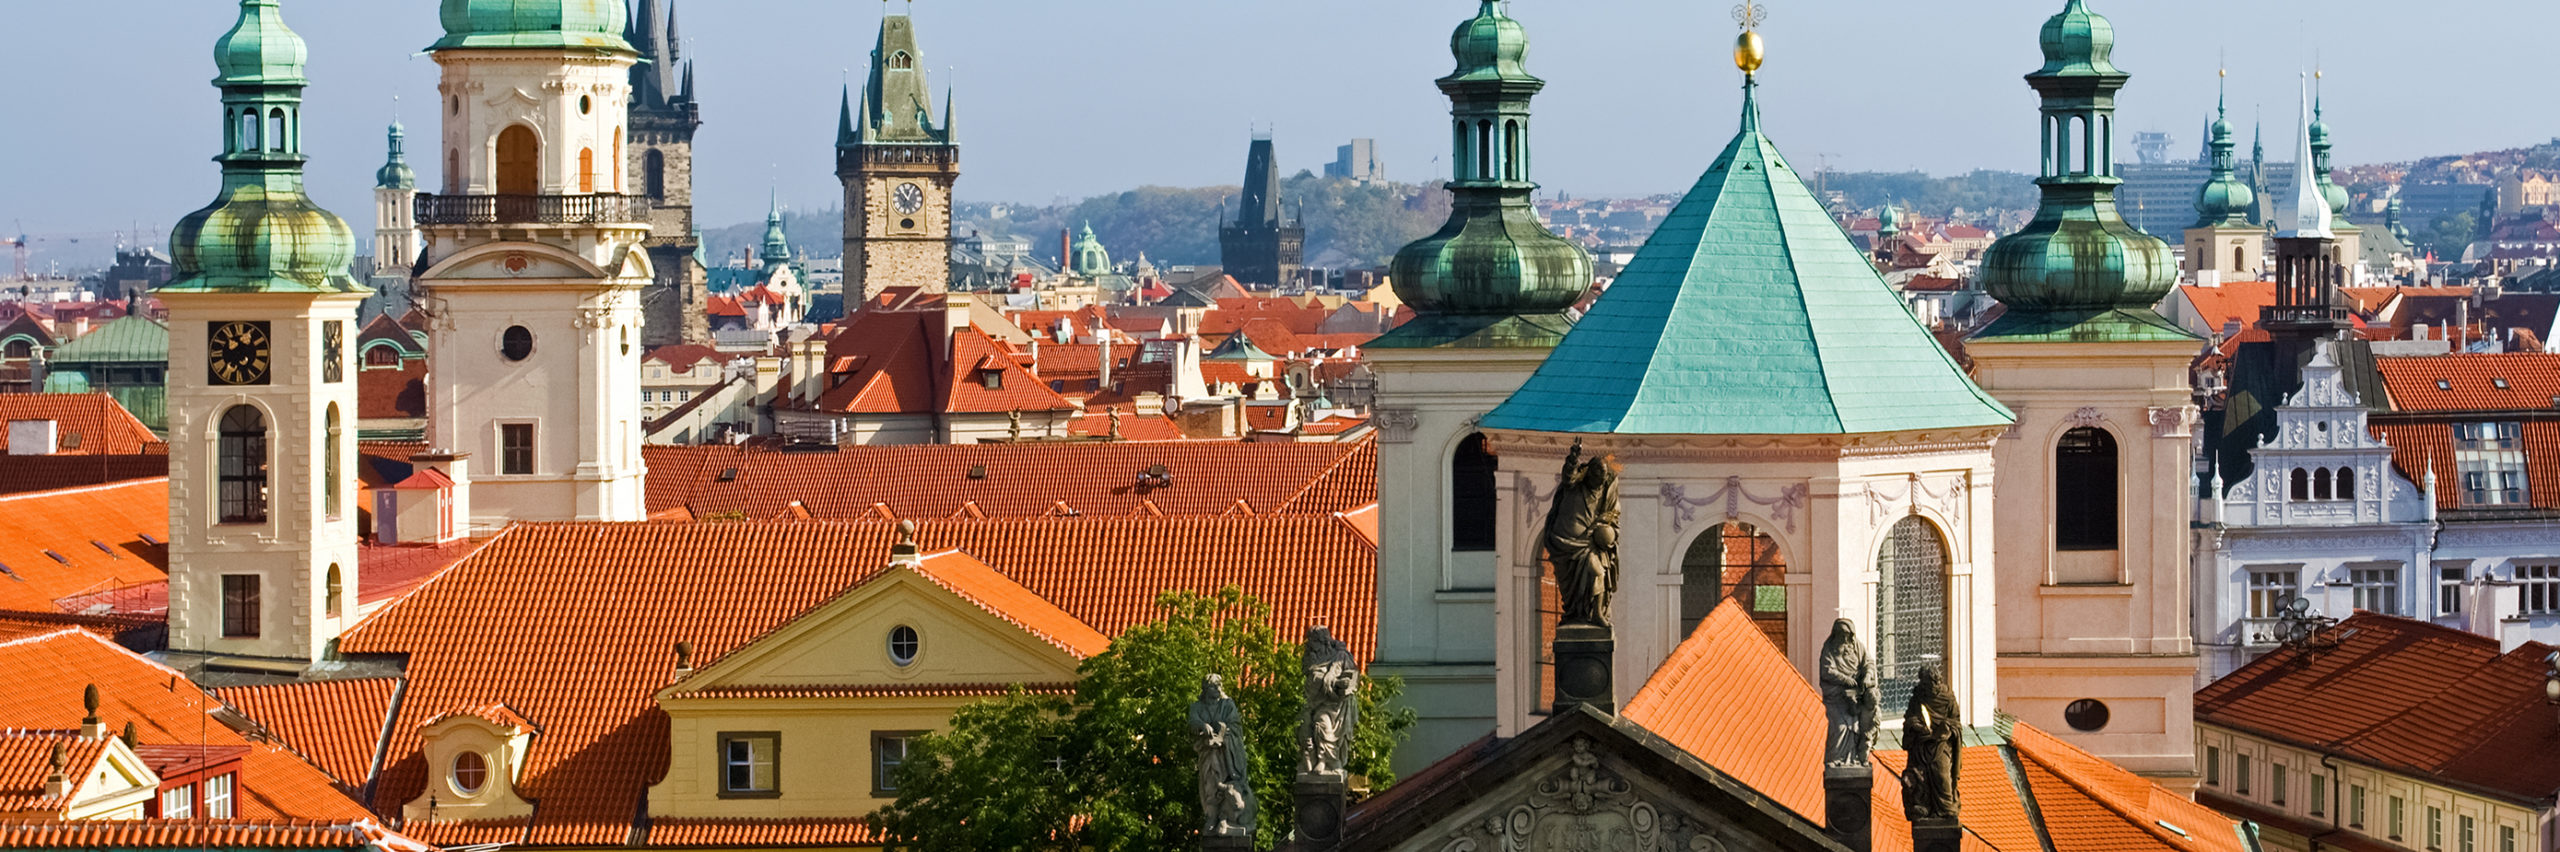 Rooftops of old Prague from high view point - Image